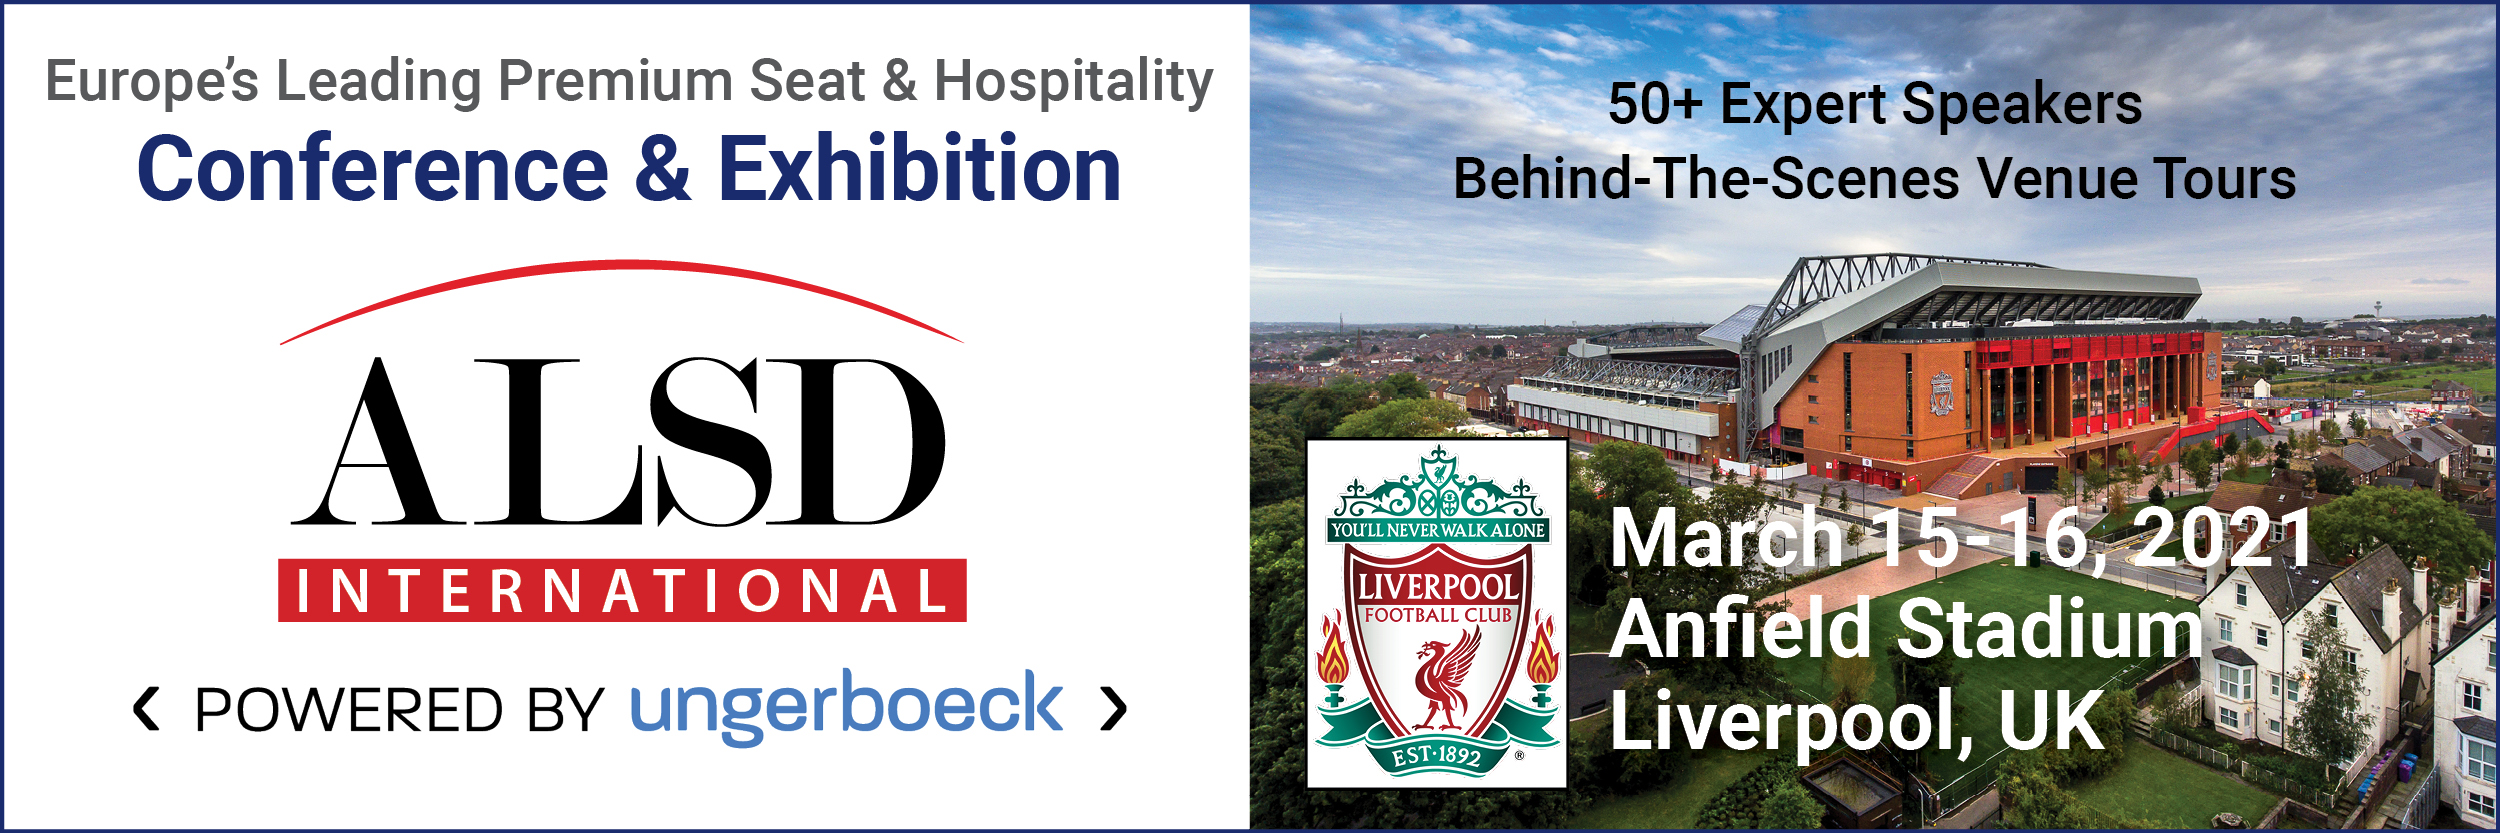 ALSD International - Liverpool, March 15-16, 2021